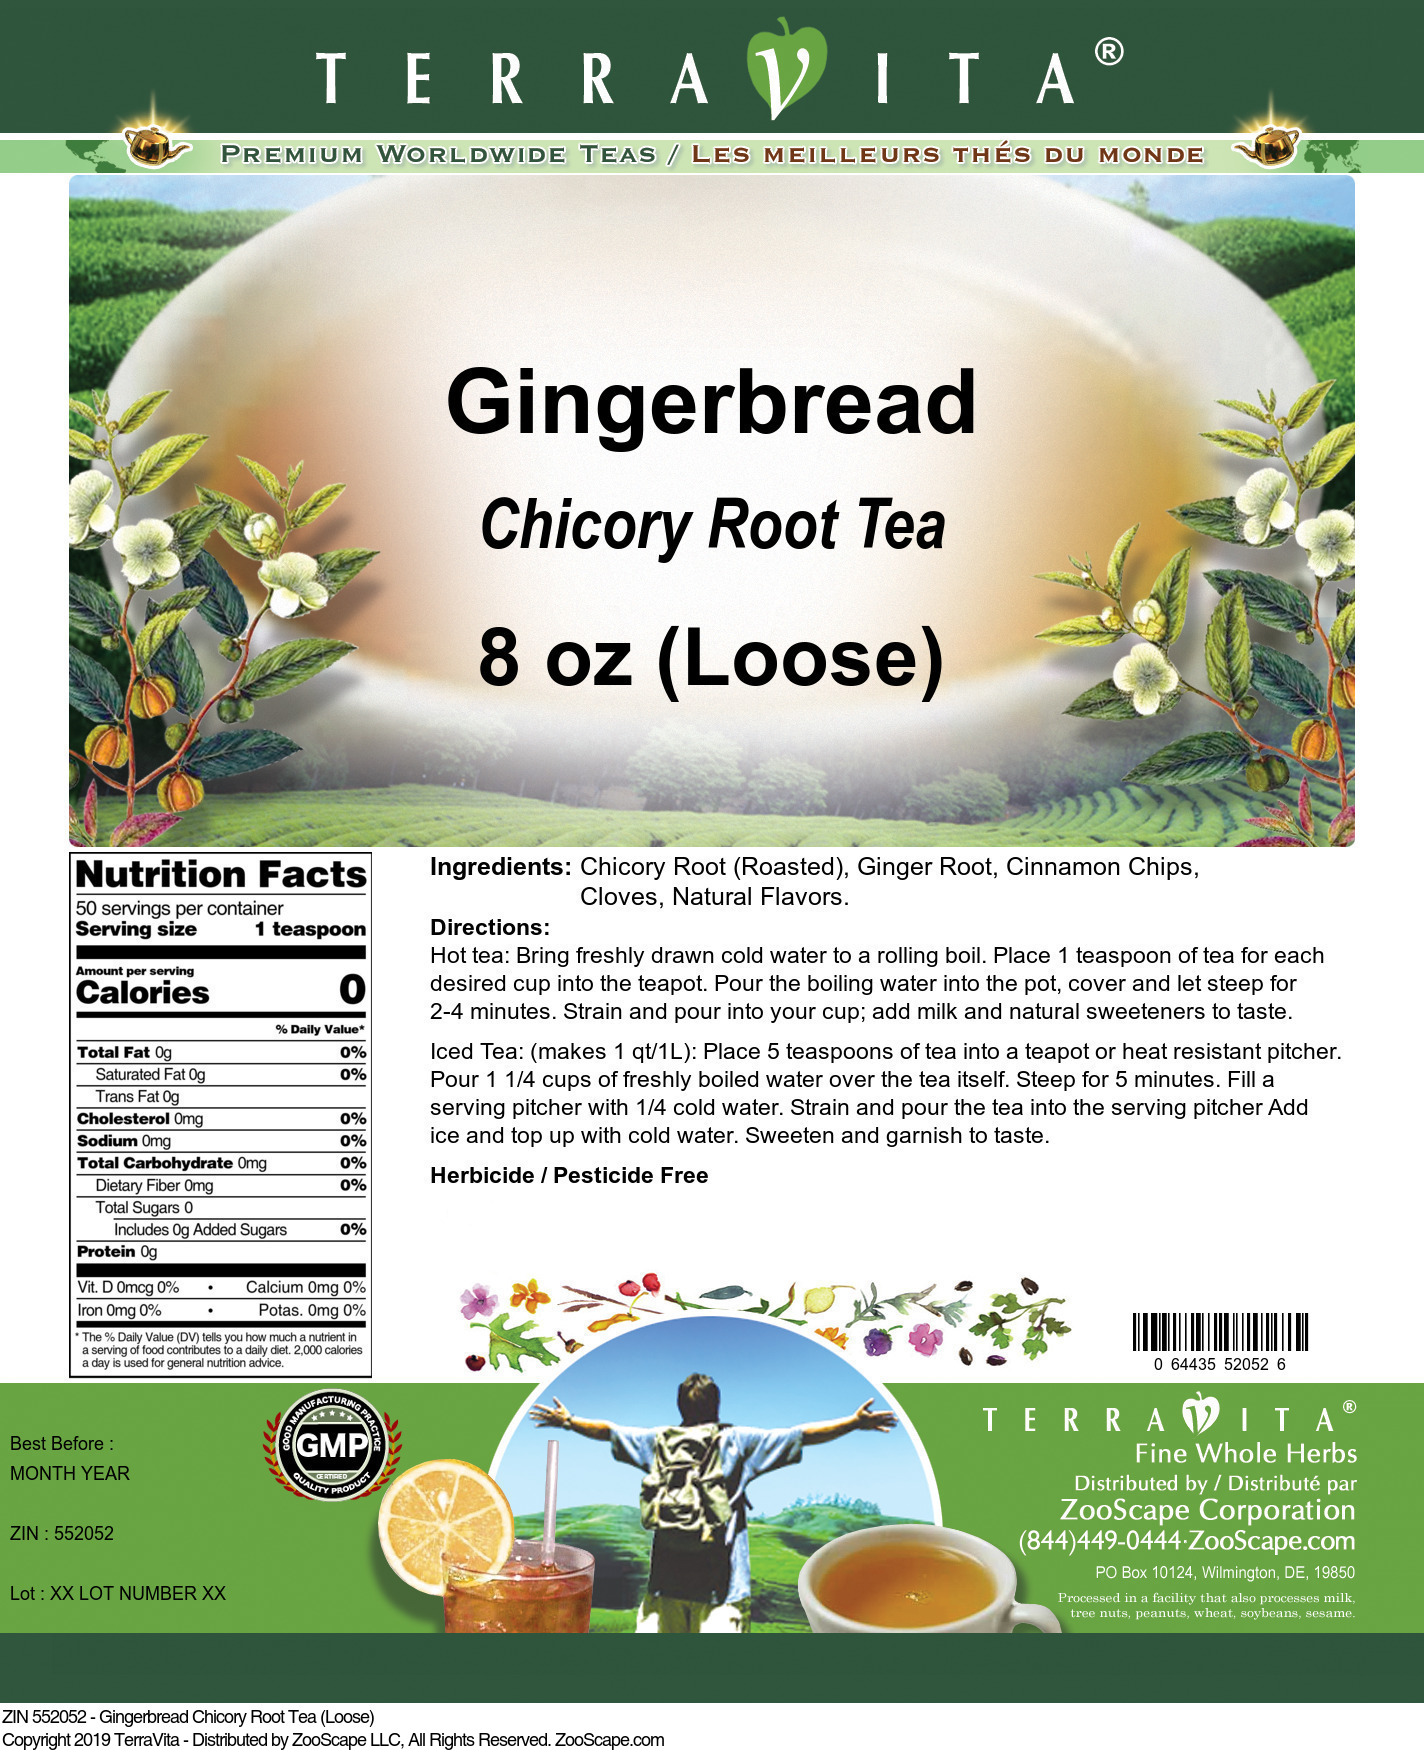 Gingerbread Chicory Root Tea (Loose)